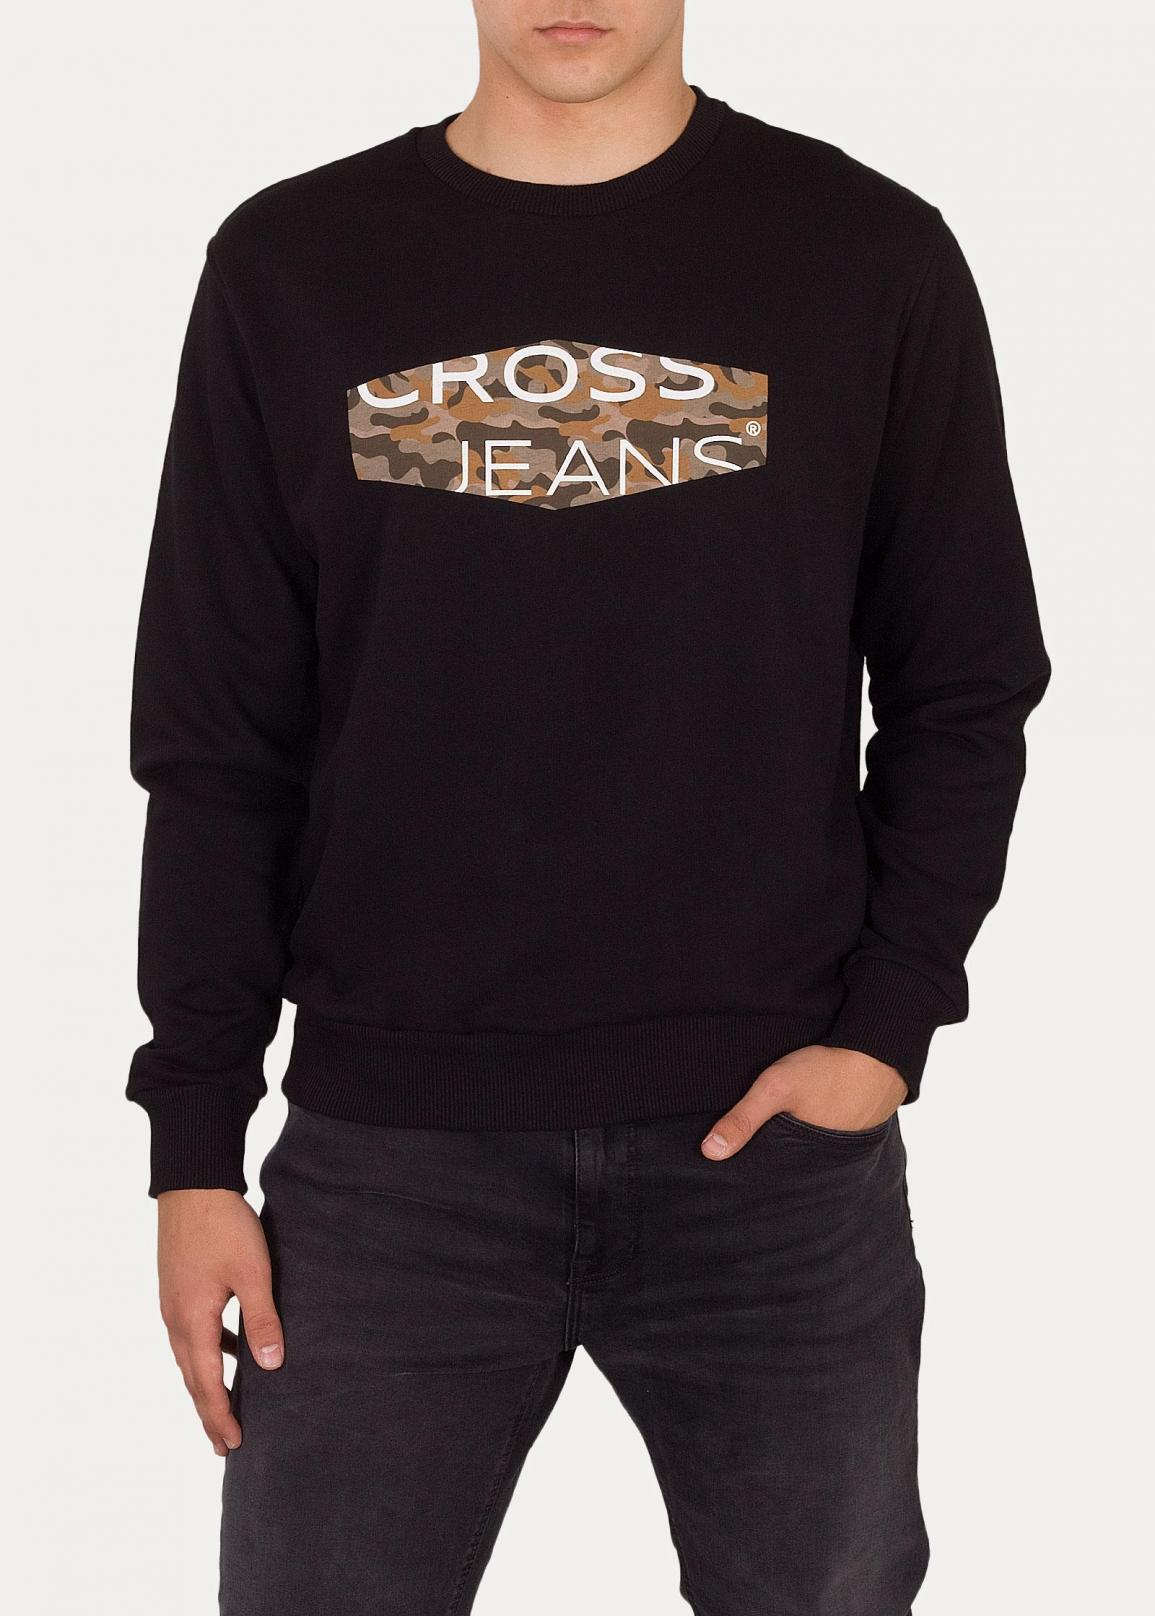 Cross Jeans® Sweatshirt 25215 - Black (020)